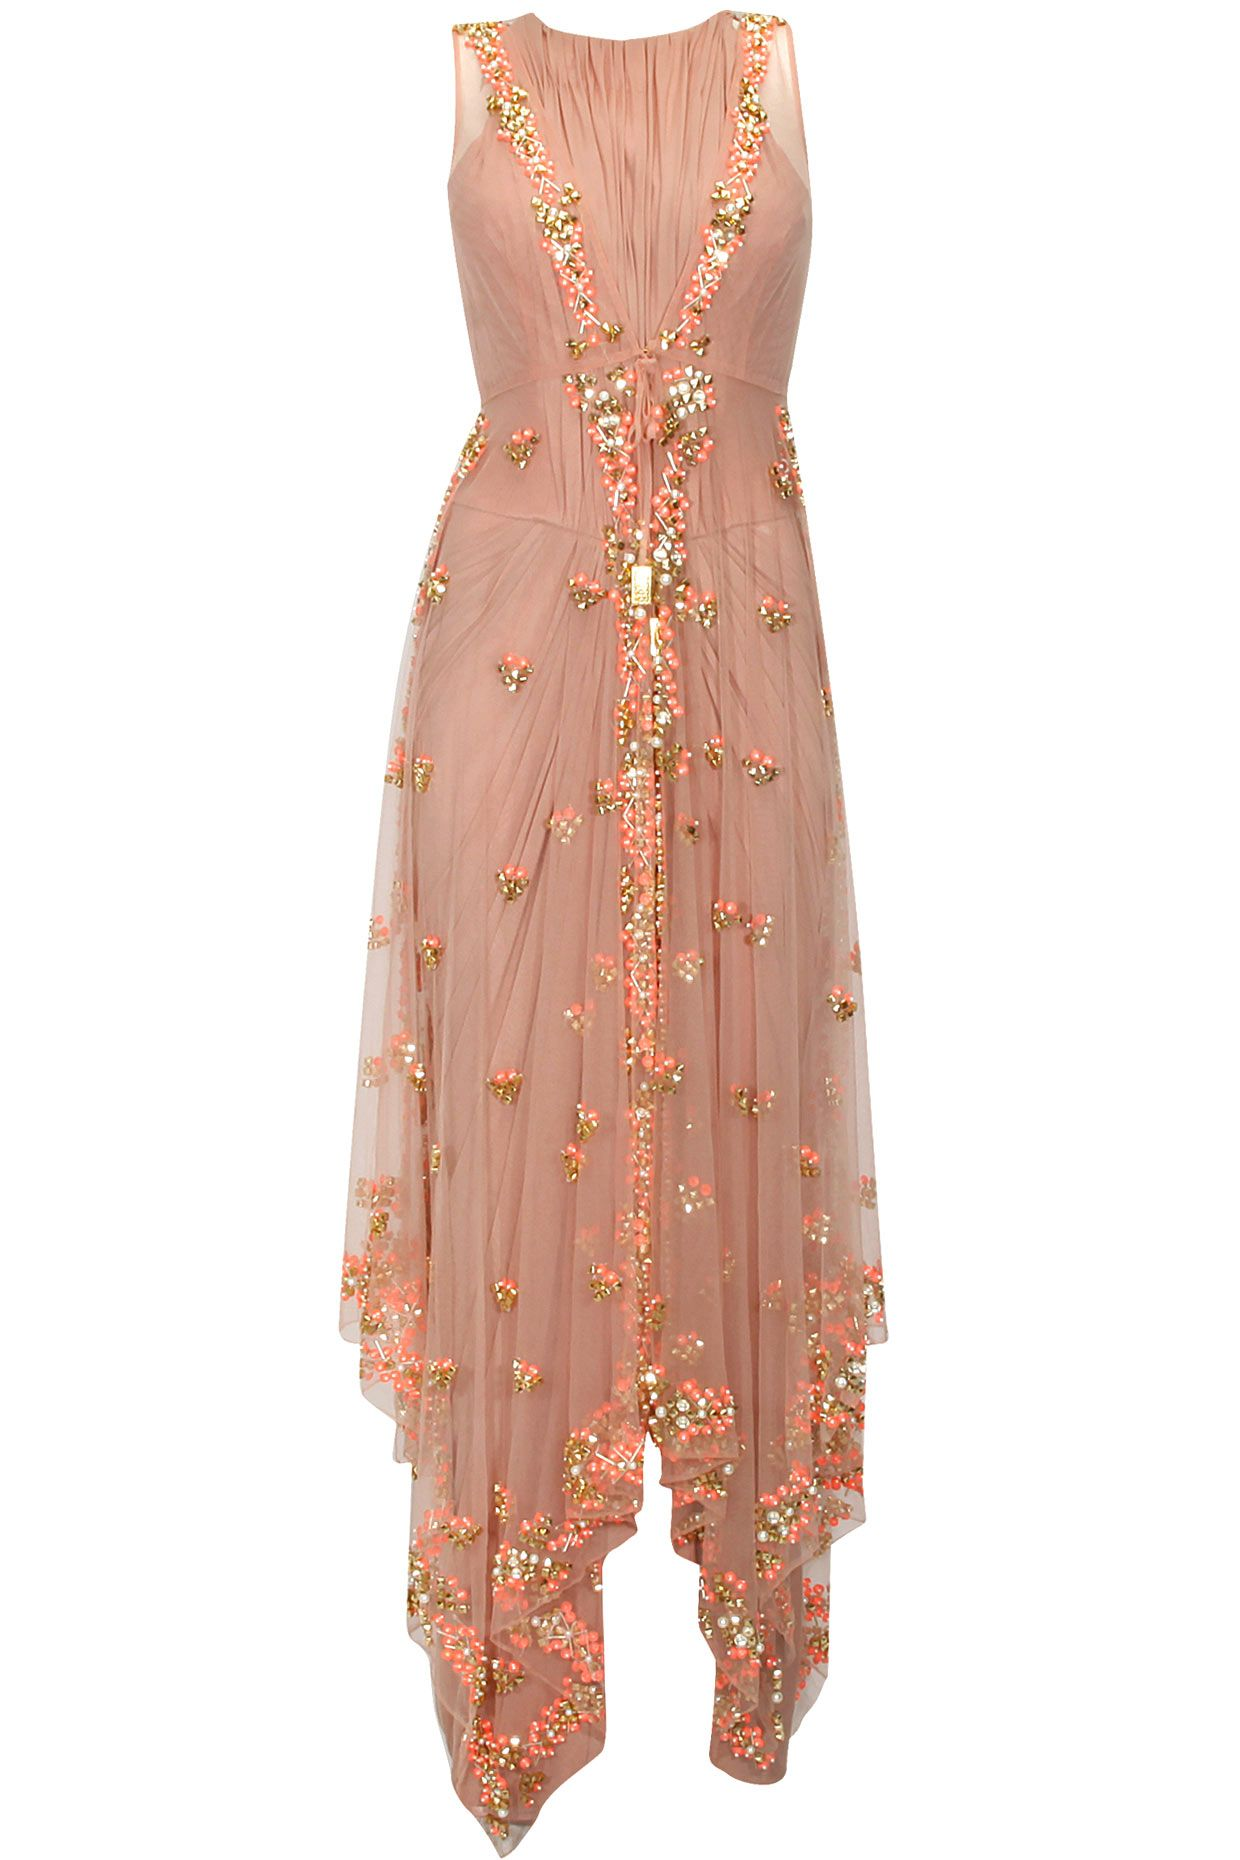 Rose beige pearl and mirror work umbrella cut dress available only